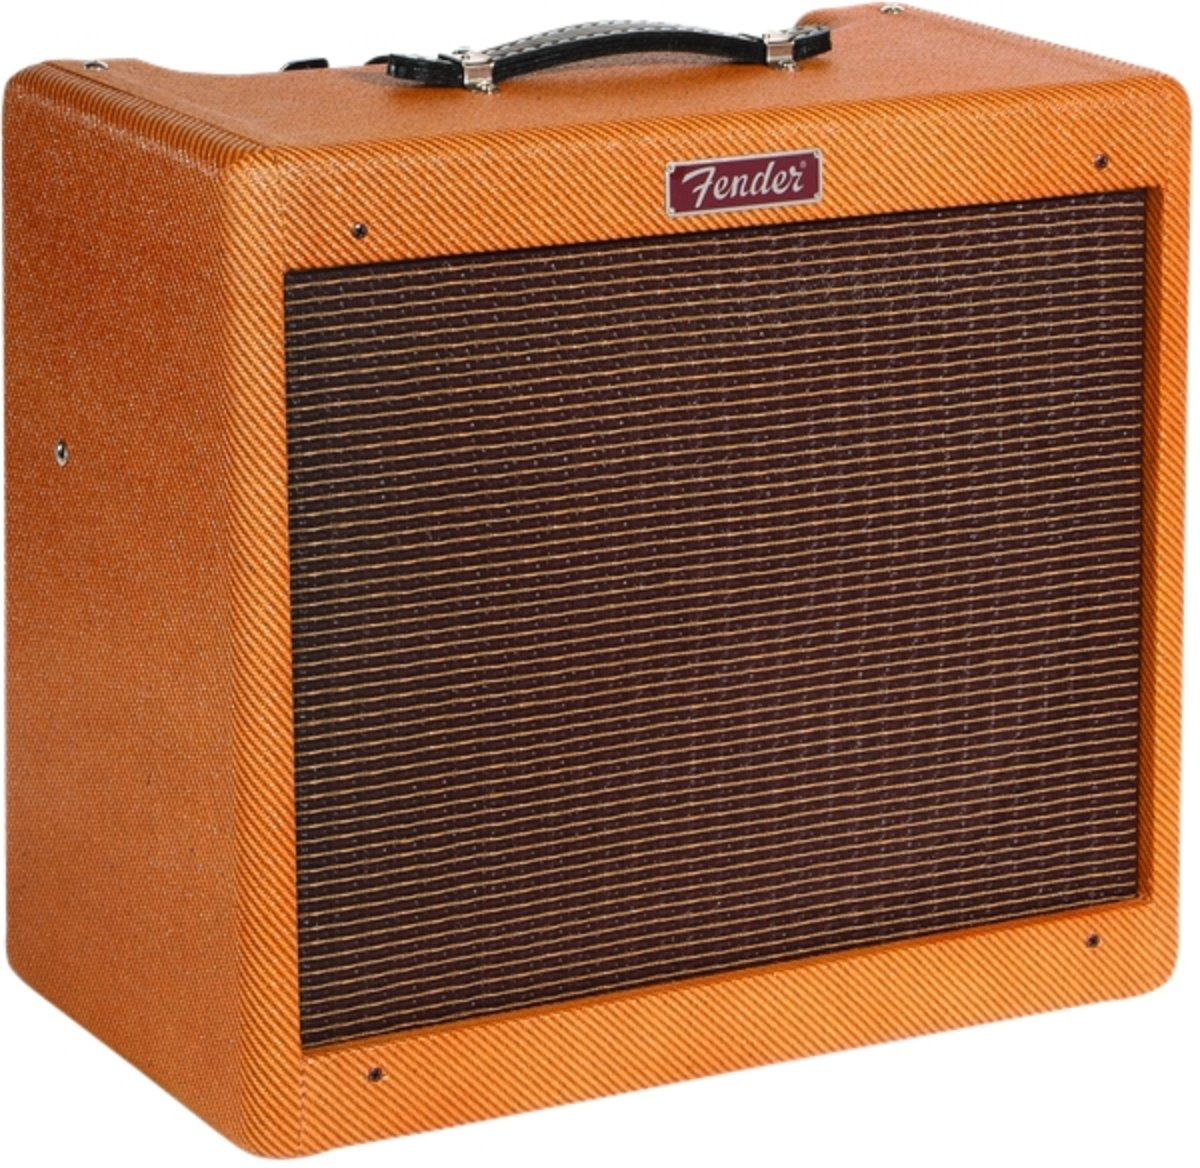 "1x12"" 15-Watt Tube Combo Guitar Amplifier"